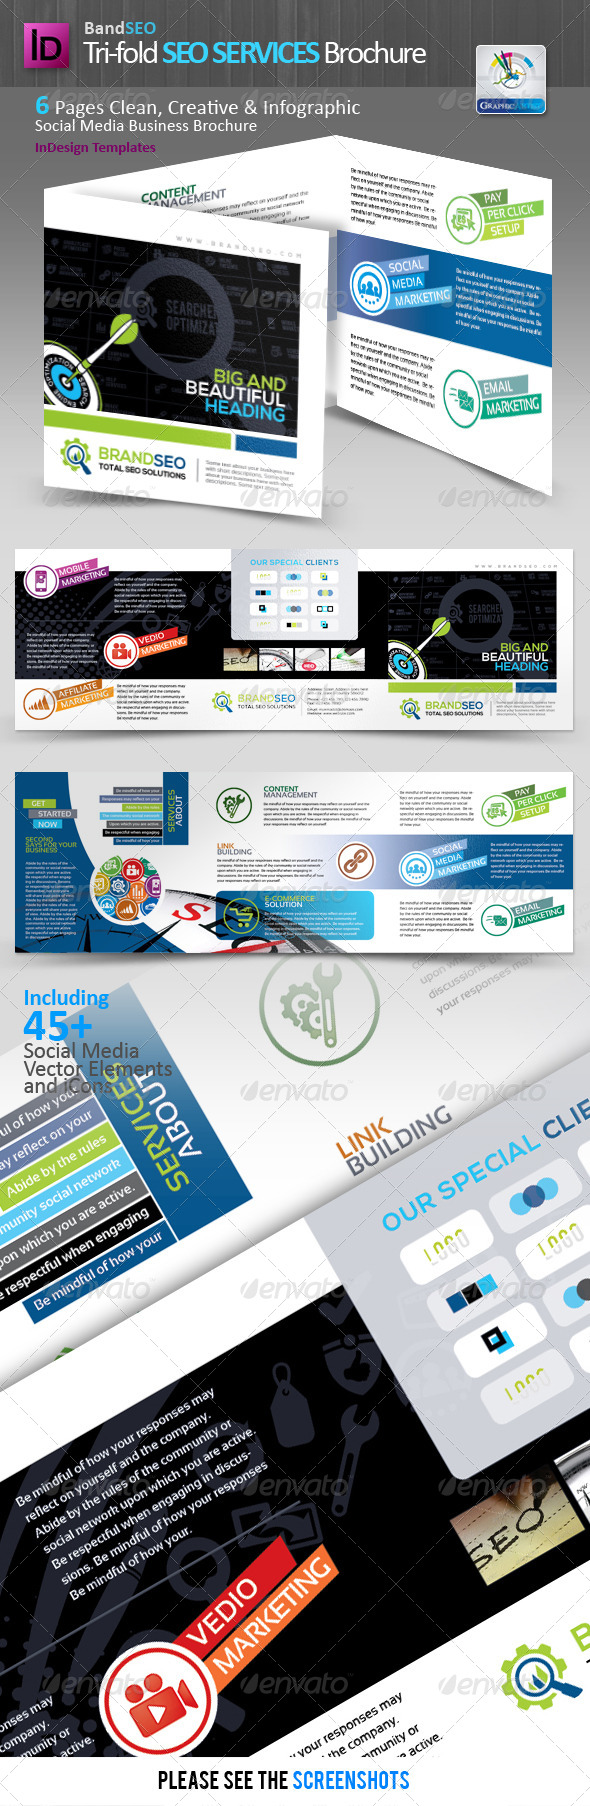 BrandSEO Tri-fold SEO Services Brochure - Corporate Brochures